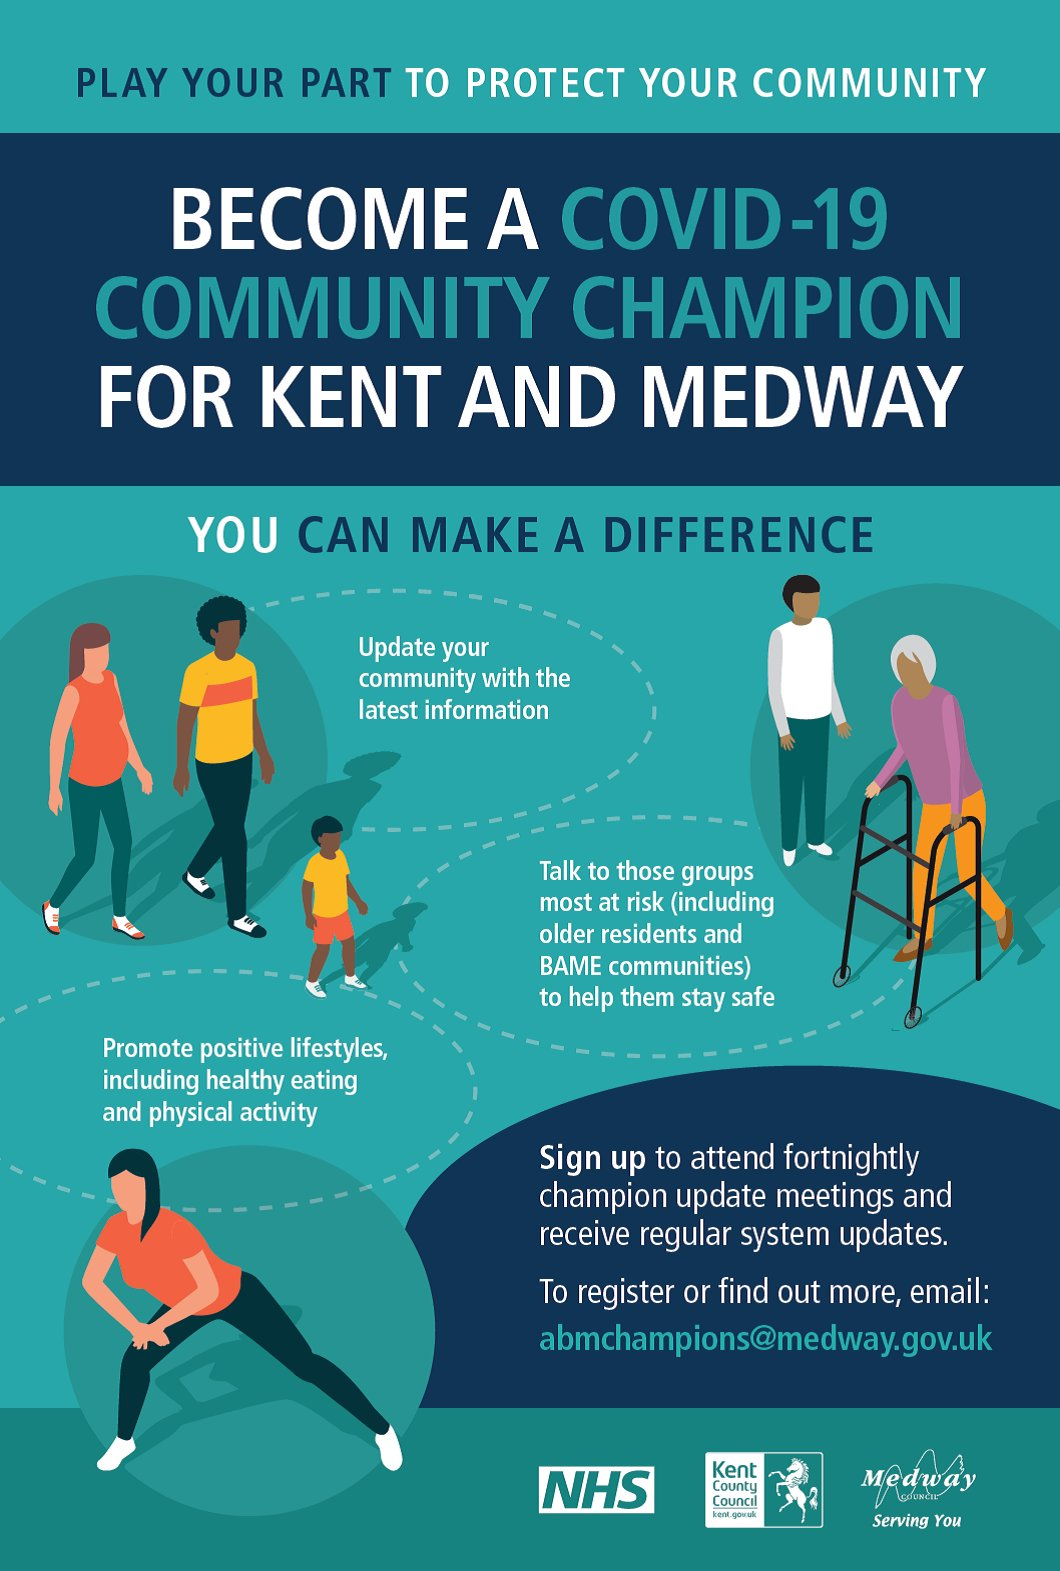 Become a COVID-19 Community Champion for Kent and Medway